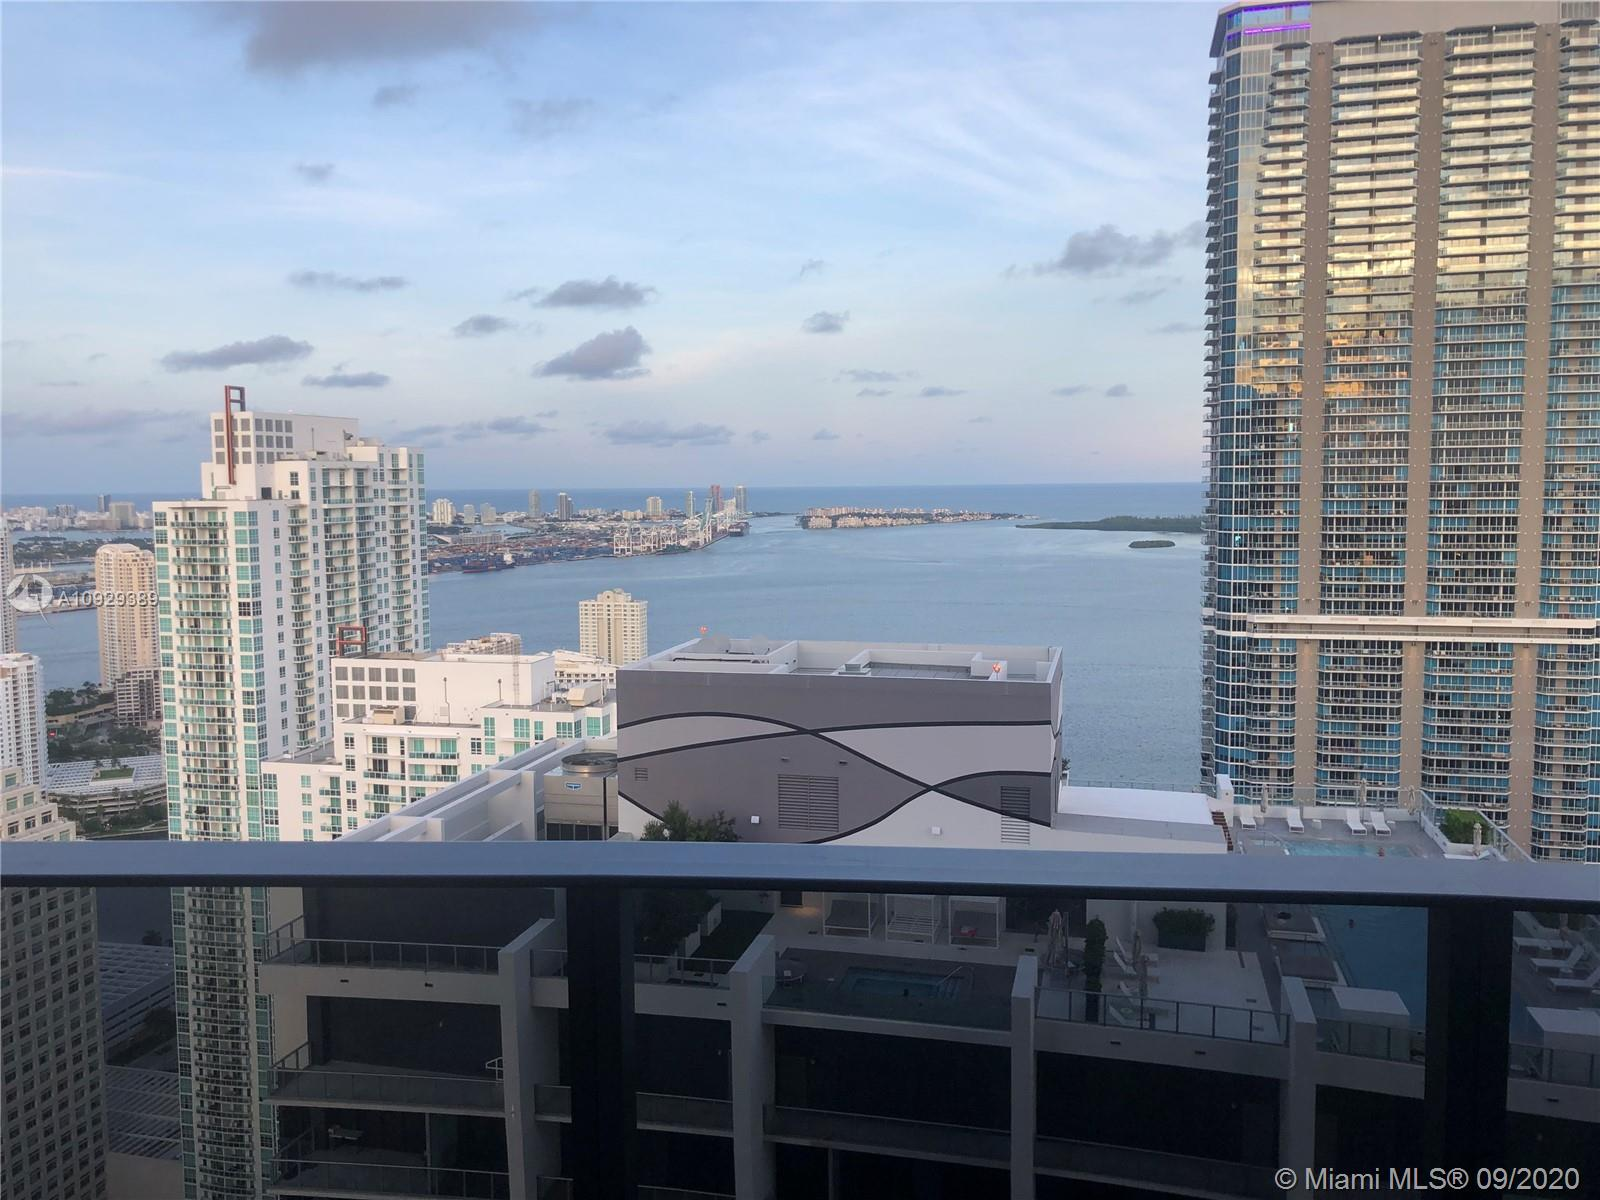 Worldclass views from this 2 Bed + Den/2.5 Bath Lower Penthouse at Brickell Flatiron with higher ceilings. Downtown Miami's hottest neighborhood celebrates a true architectural icon. These luxury Brickell condos located at 1000 Brickell Plaza are an urban oasis developed by Ugo Colombo and designed by Luis Revuelta. The tower of soaring glass, defined by sweeping exposures, enhances the skyline with persuasive curves. Inside, Italian interior architect Massimo Iosa Ghini introduces a design concept of fluid, continuous space by creating a seamless transition from Brickell Flatiron's exterior. Italian Porcelain floors, Snaidero kitchens, and a great floorplan create an incredible home in the sky. Rooftop pool, spa, Sauna and fitness center with Pilates/yoga and aerobics studio.